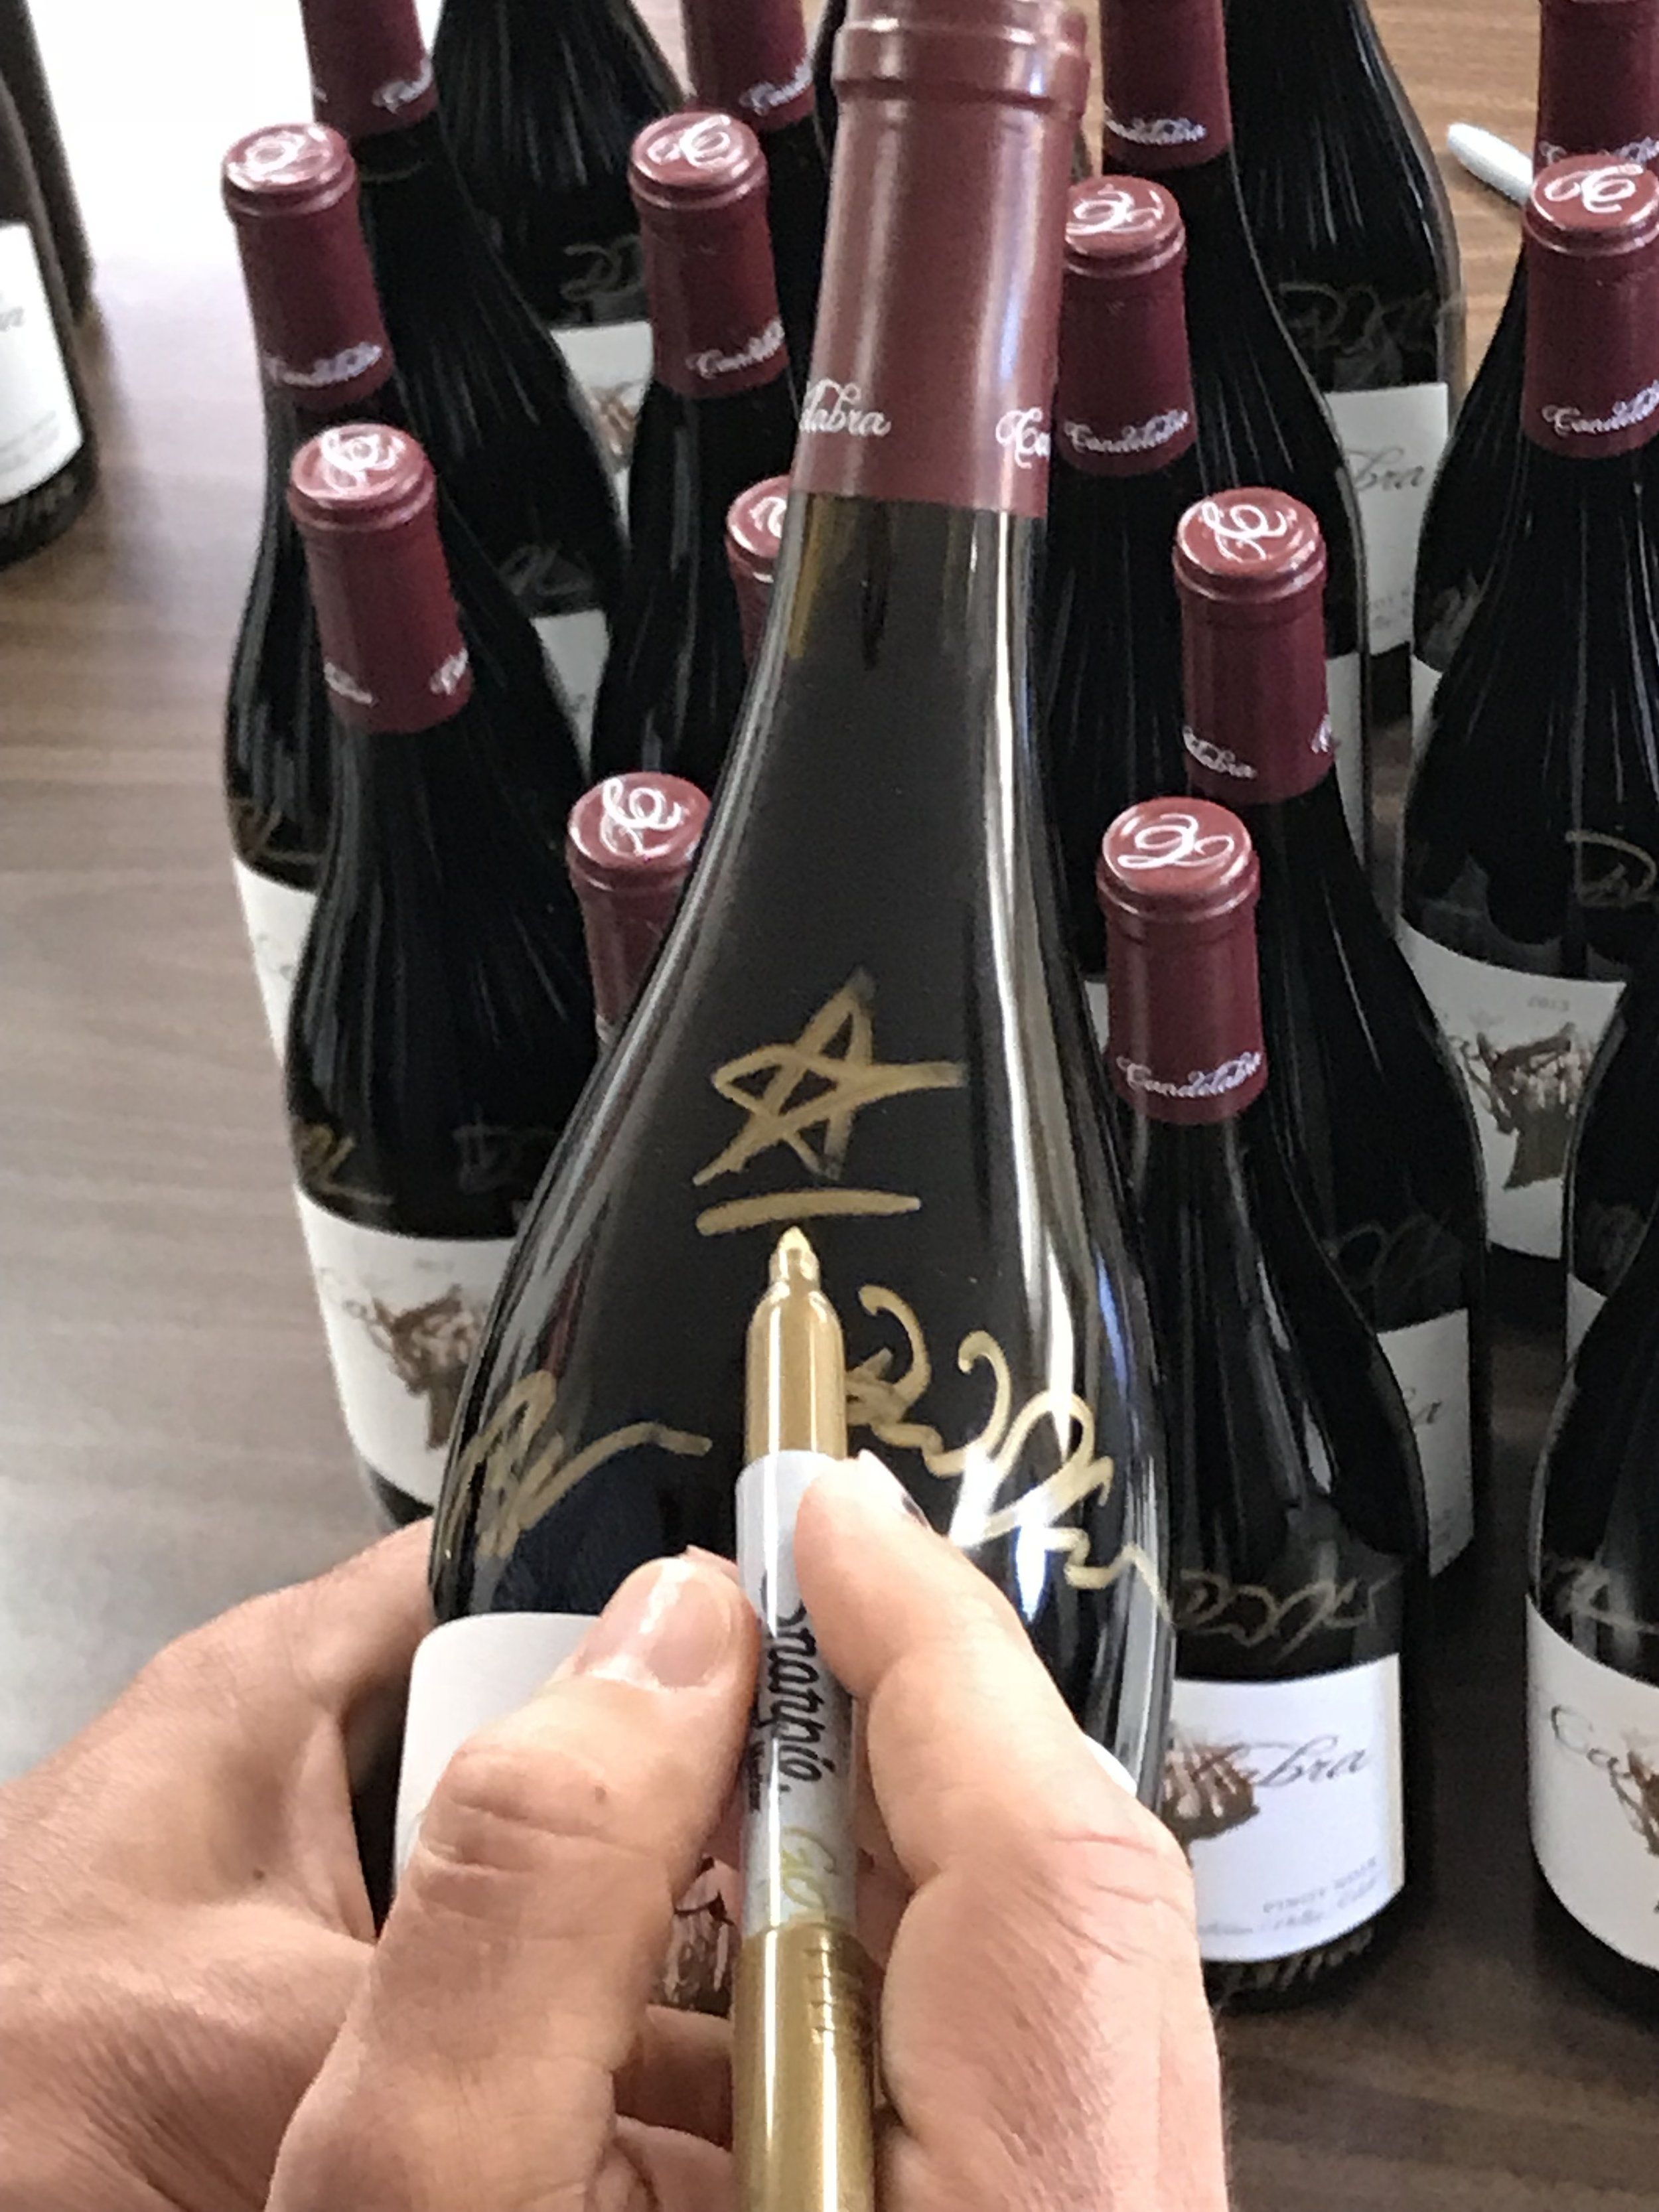 Special Star means you are qualified to take a trip with Wine To Water